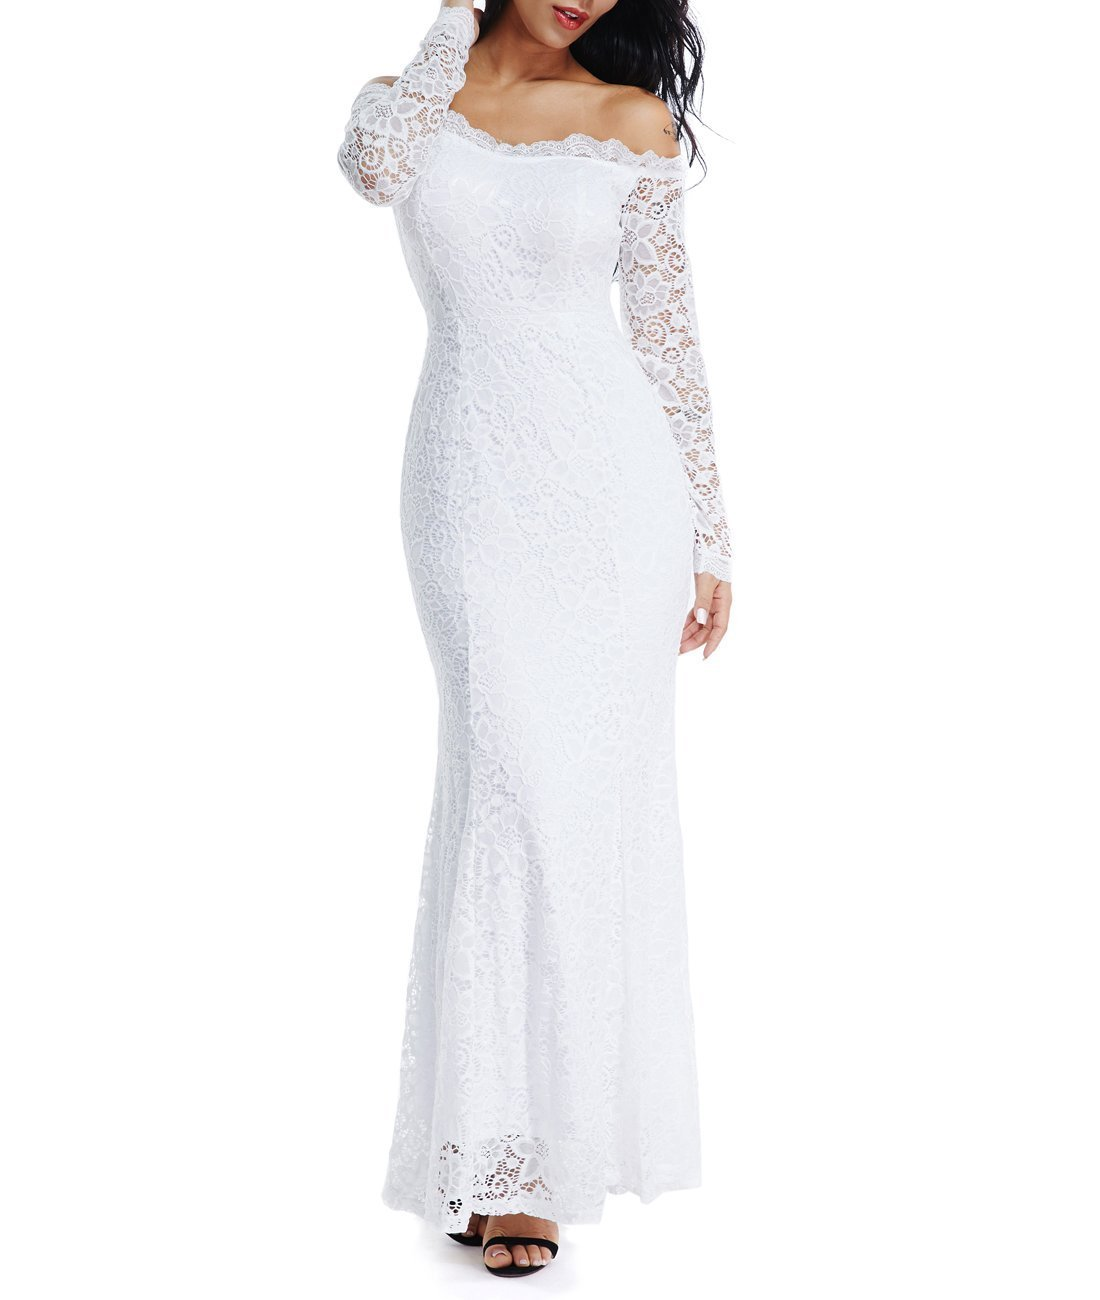 Lalagen Women's Floral Lace Long Sleeve Off Shoulder Wedding Mermaid Dress White1 S by Lalagen (Image #1)